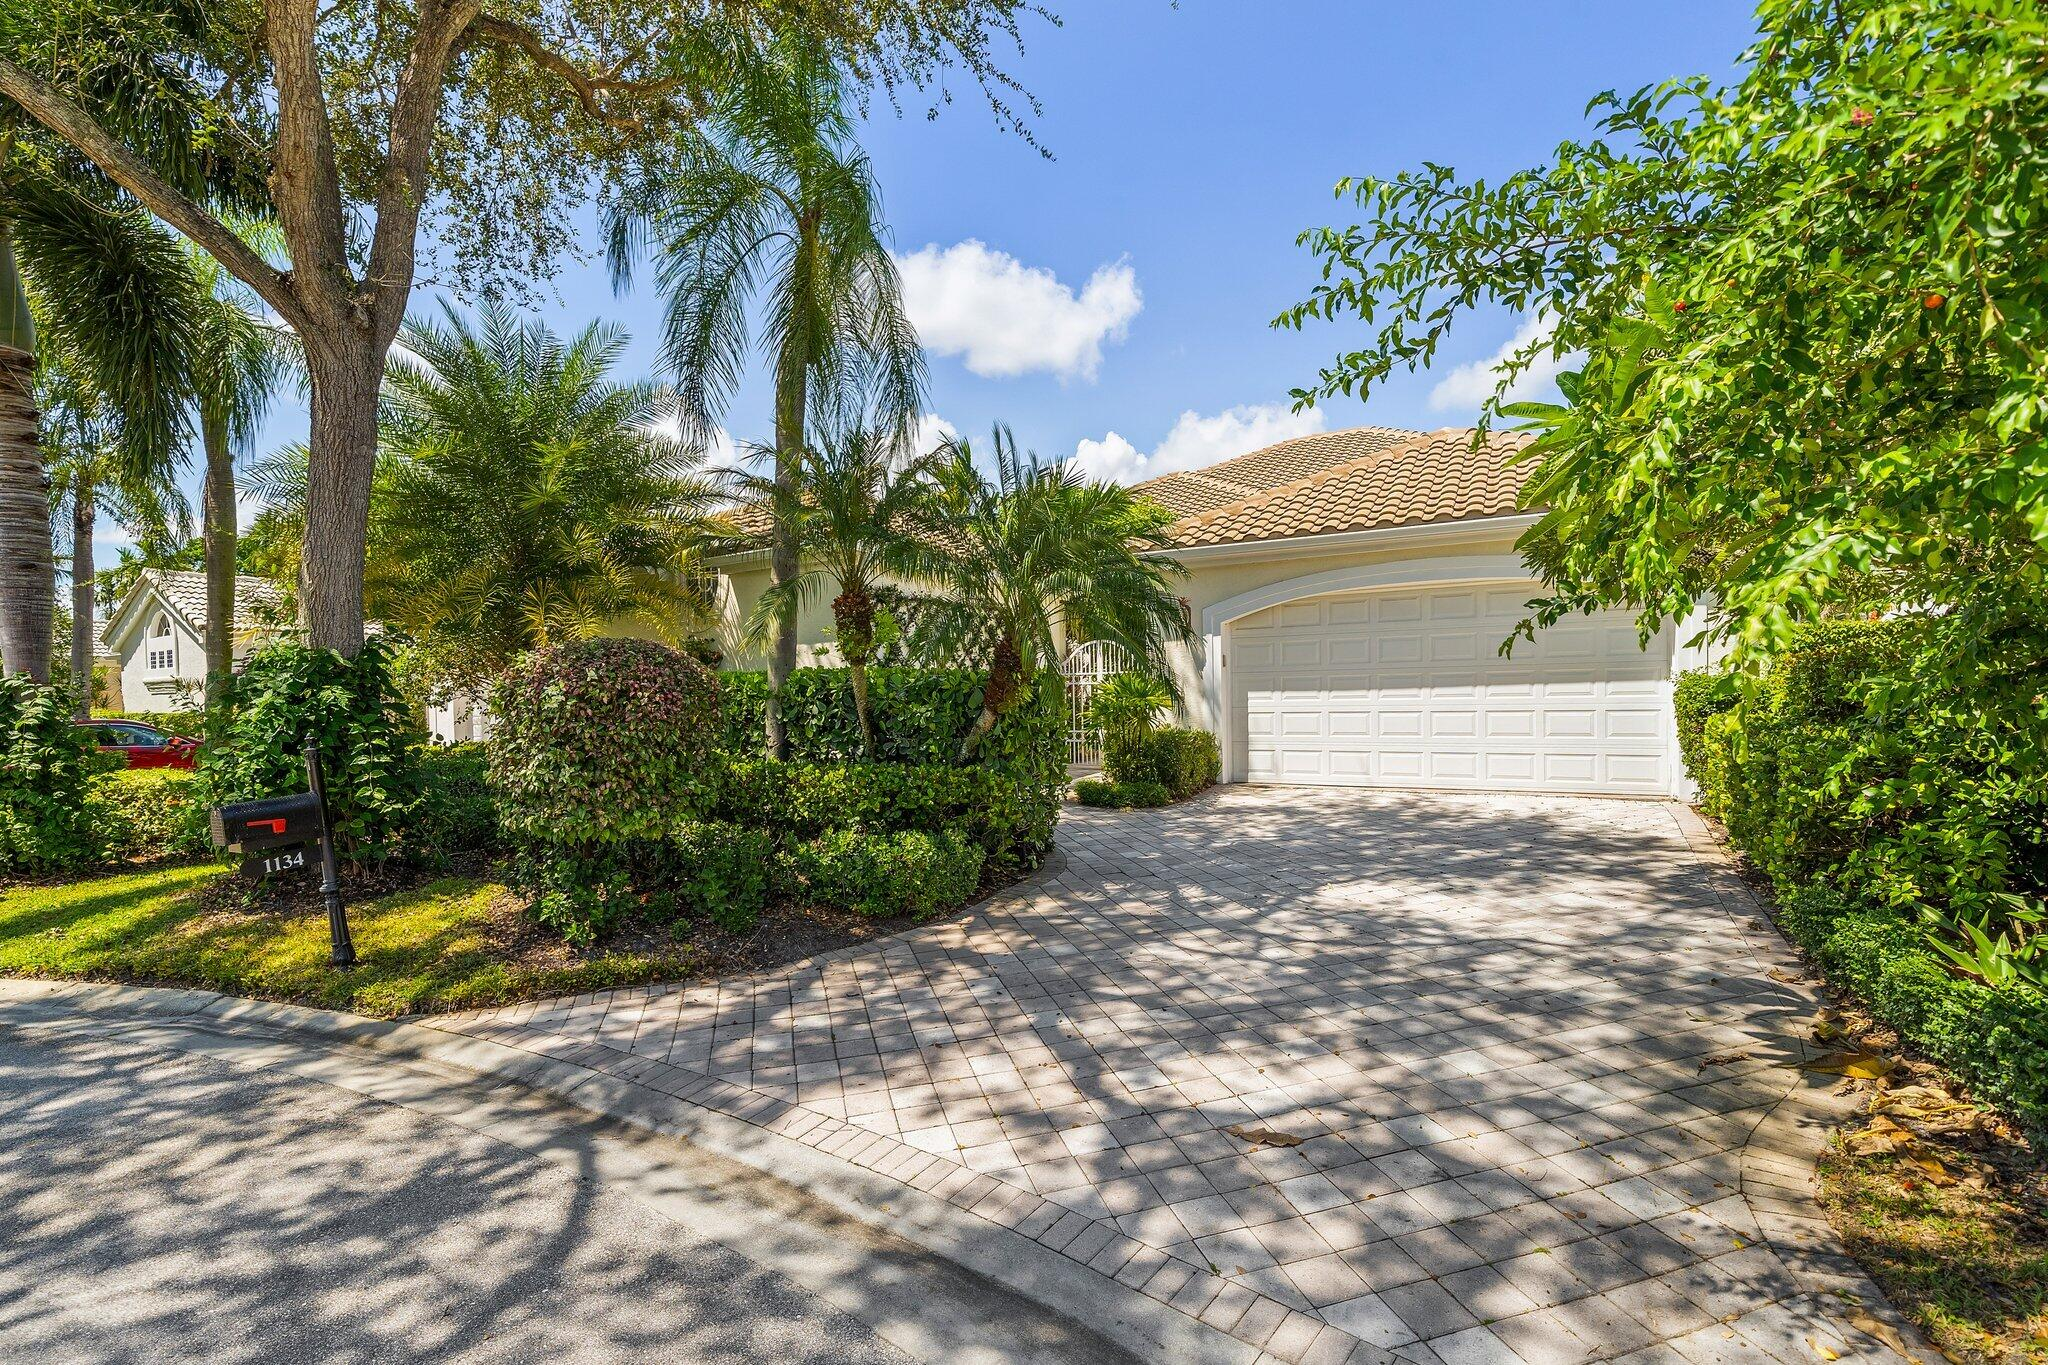 1134  Crystal Drive  For Sale 10746271, FL